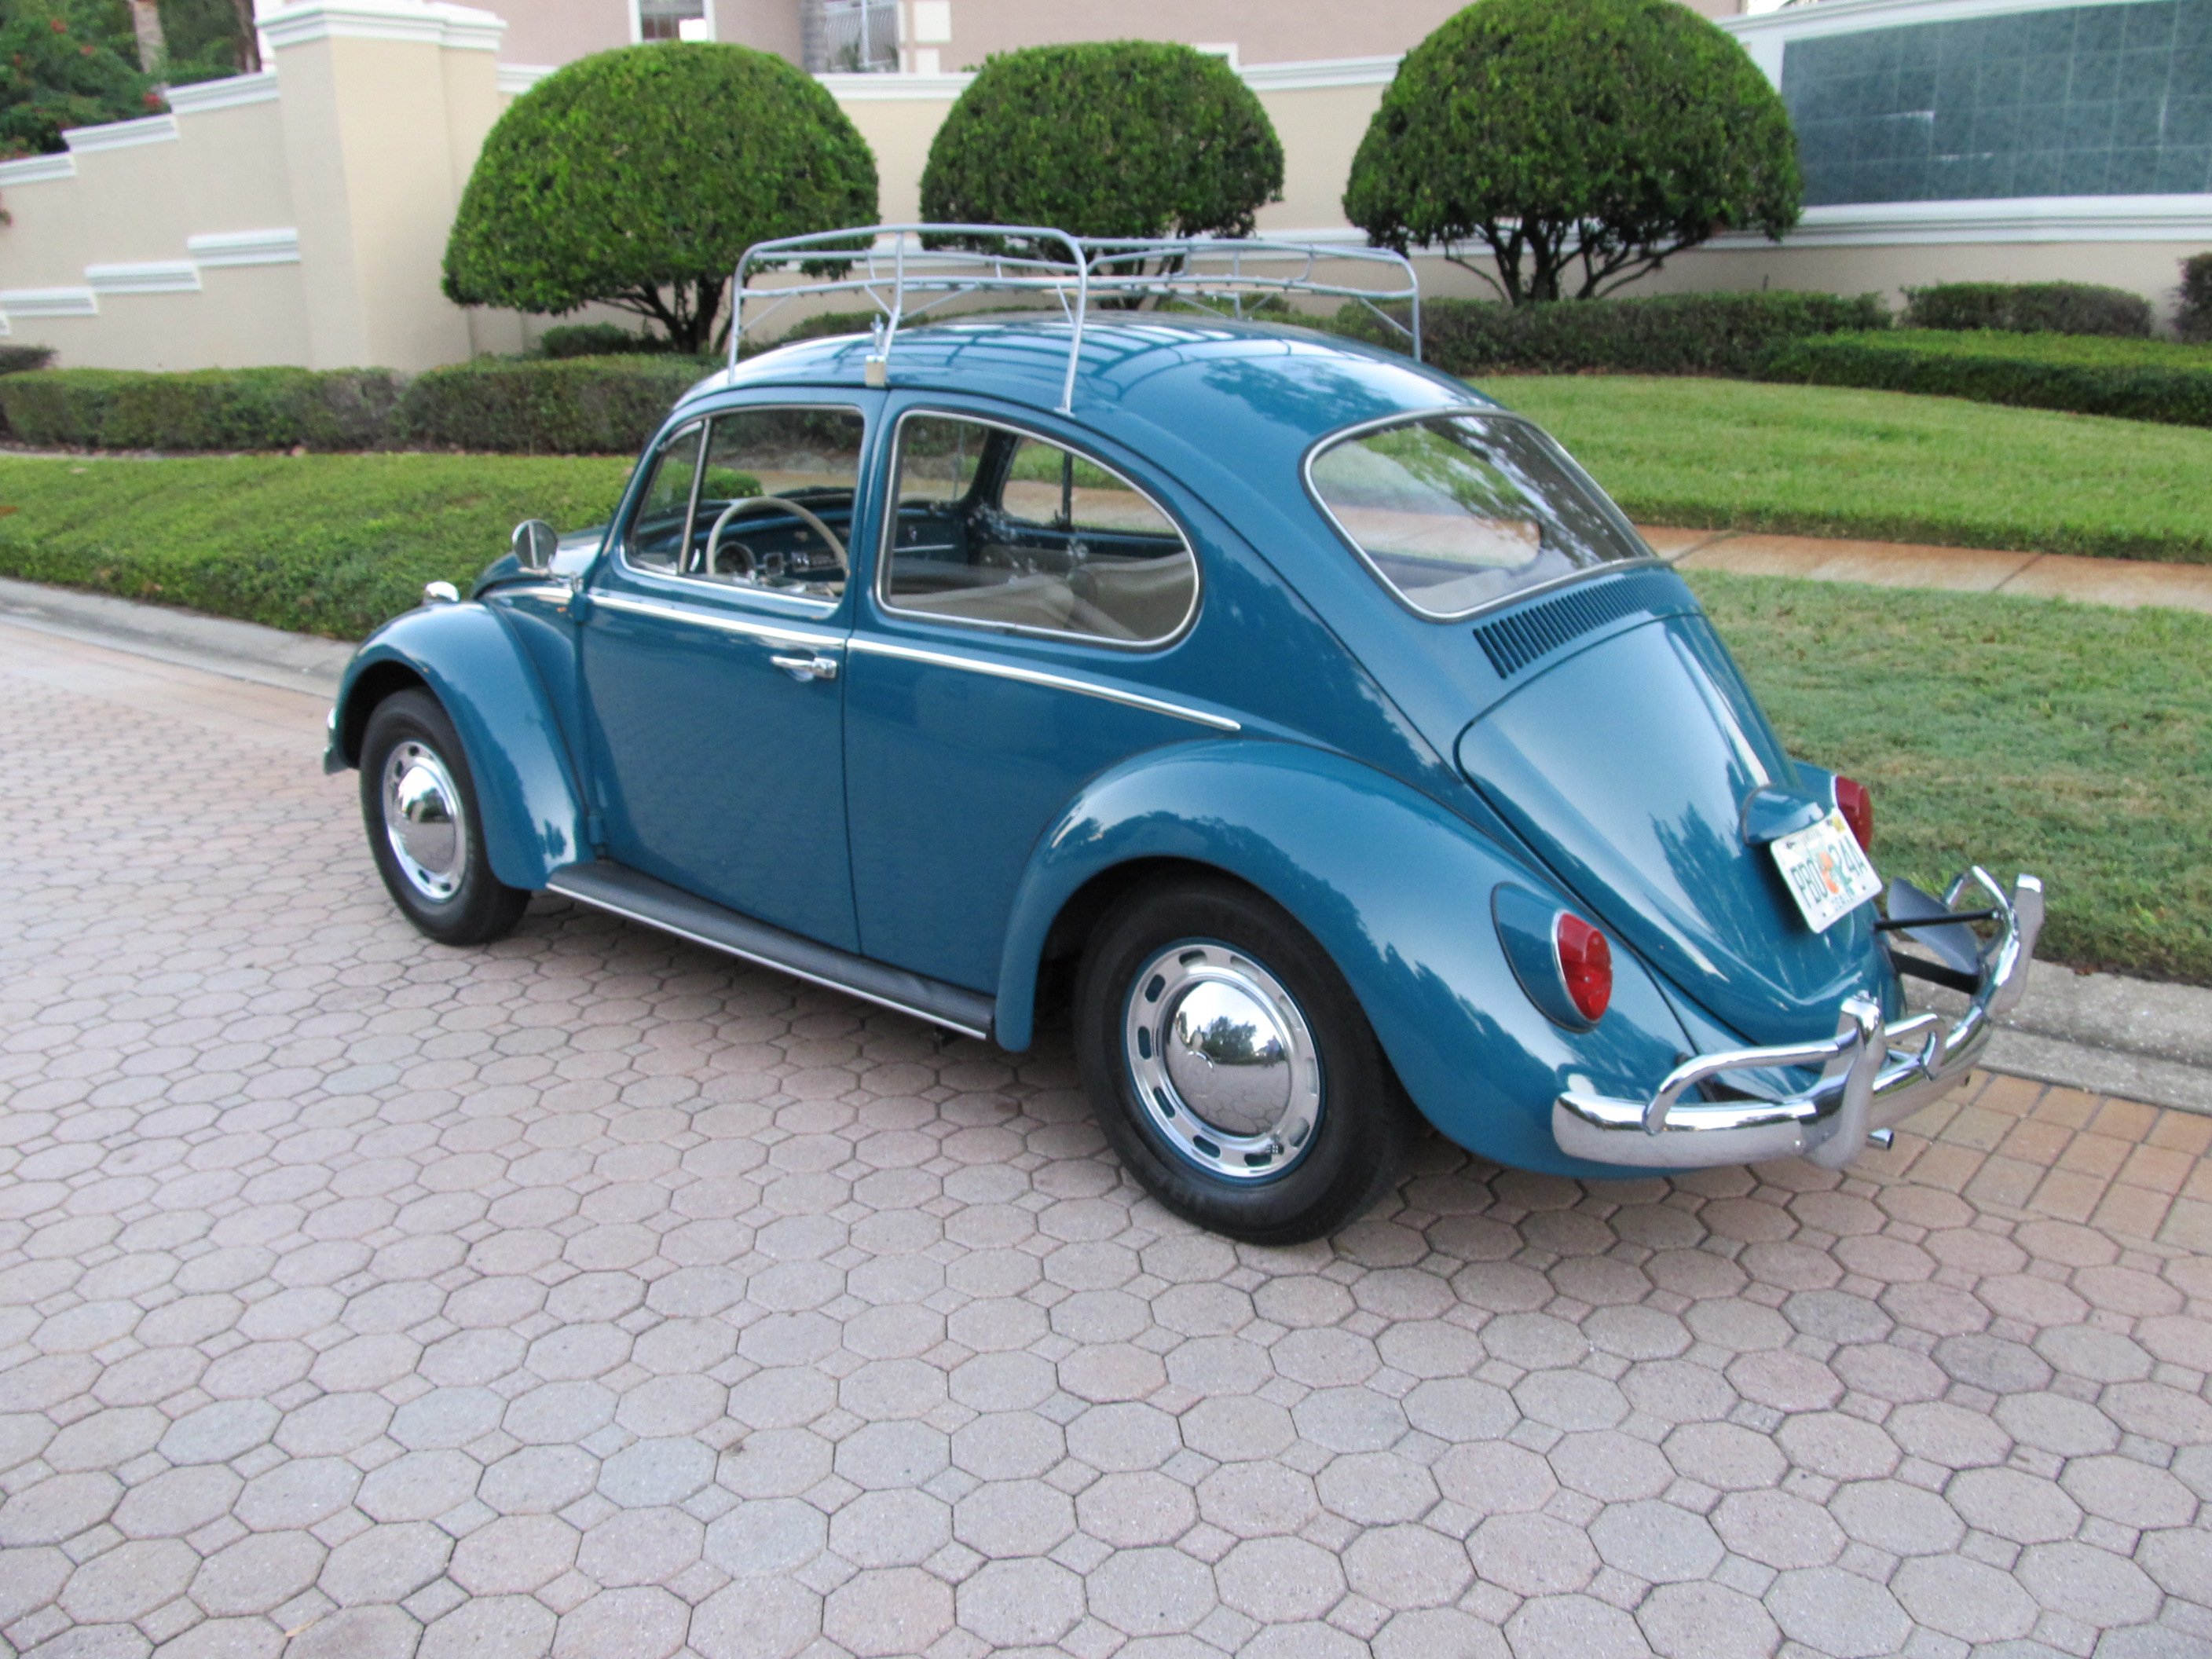 1965 Volkswagen Beetle   Sunroof Model  SOLD    Vantage Sports Cars     1965 Volkswagen Beetle     Sunroof Model  SOLD